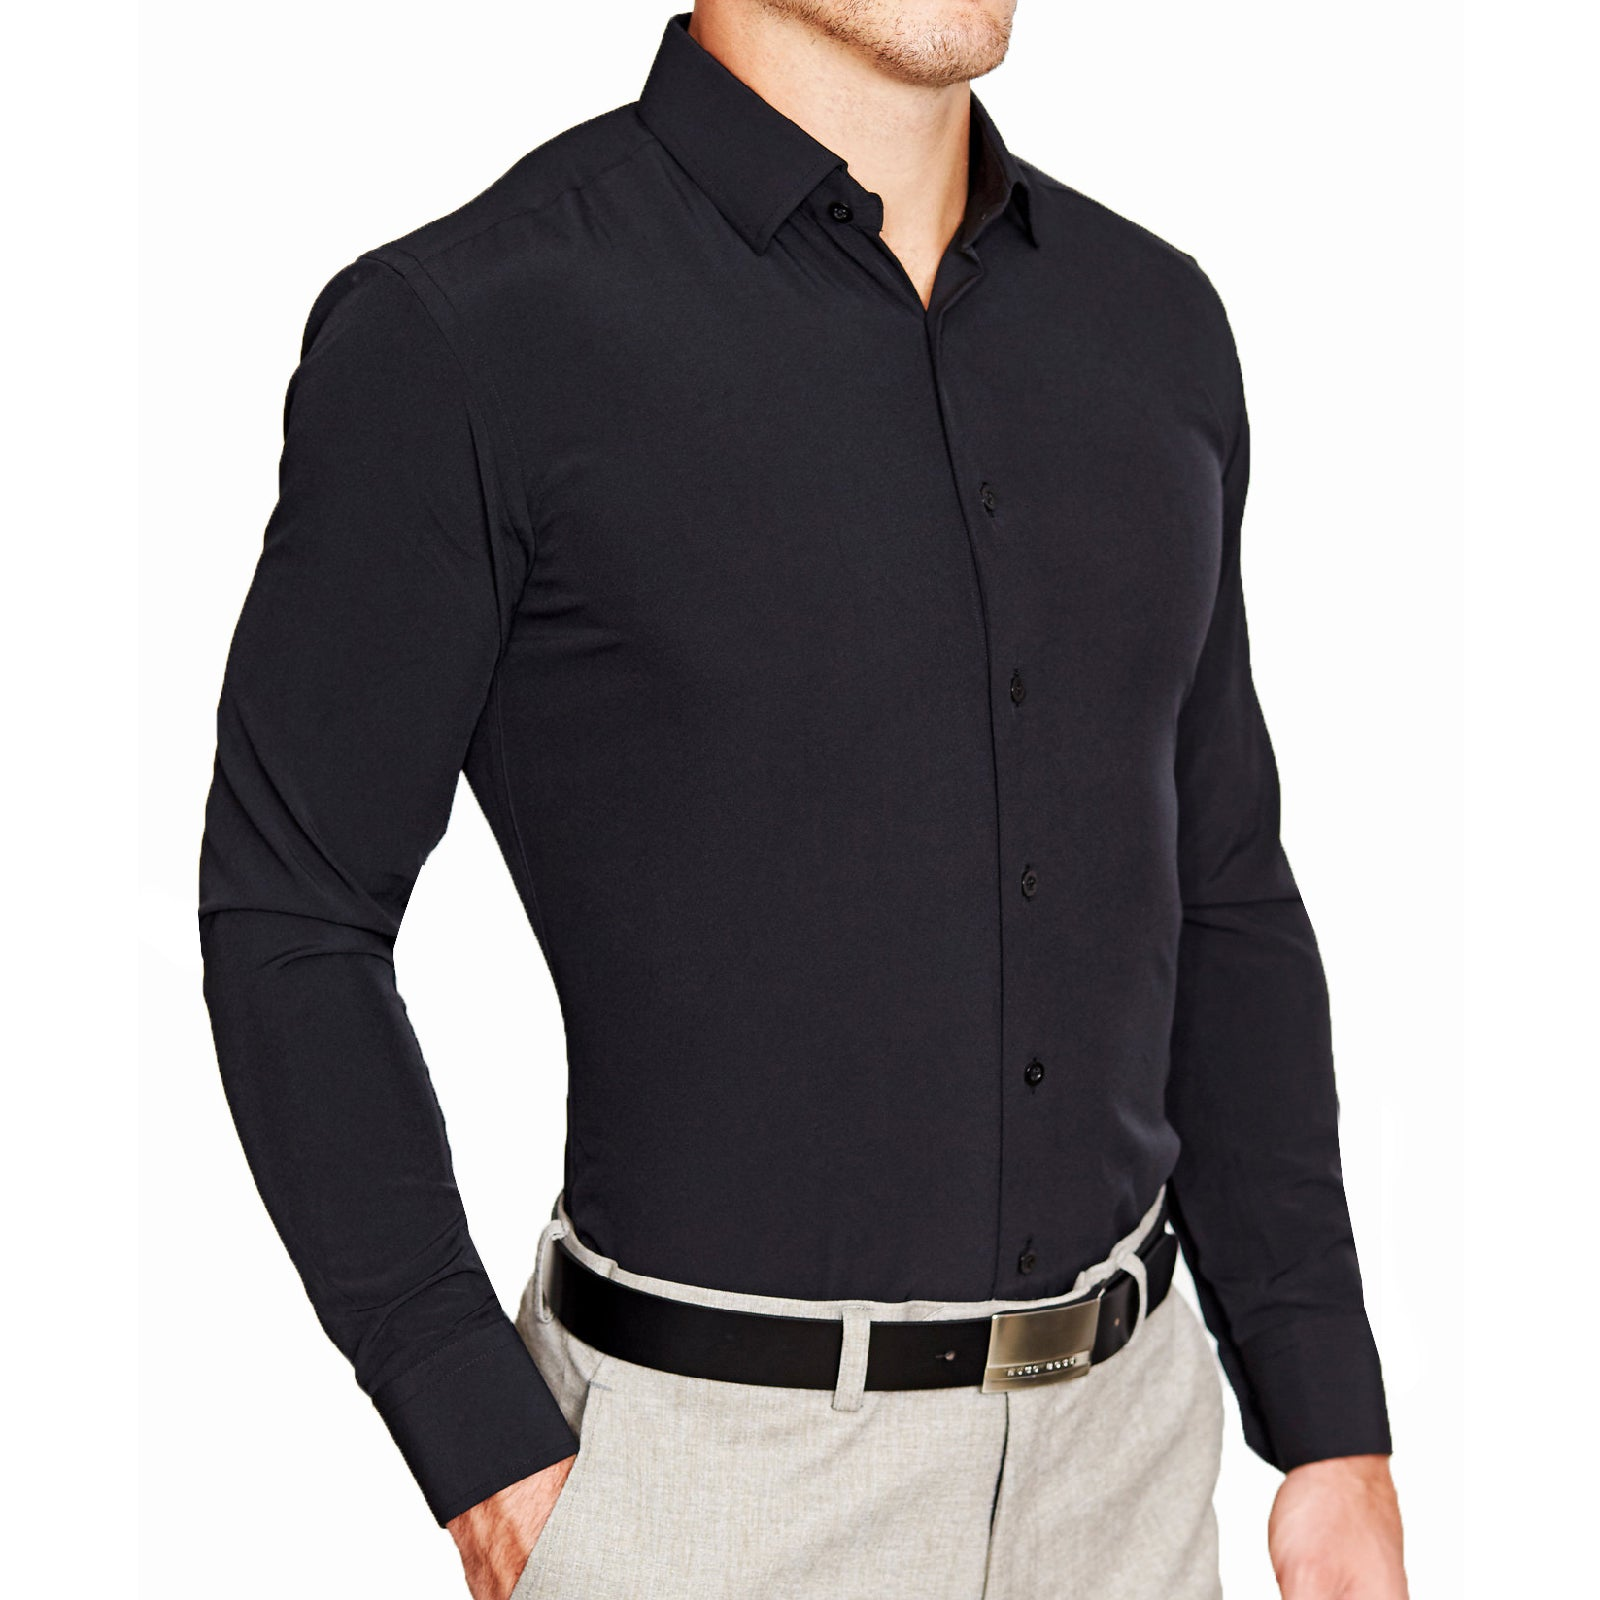 841035a97a72 Athletic Fit Dress Shirts - State and Liberty Clothing Company